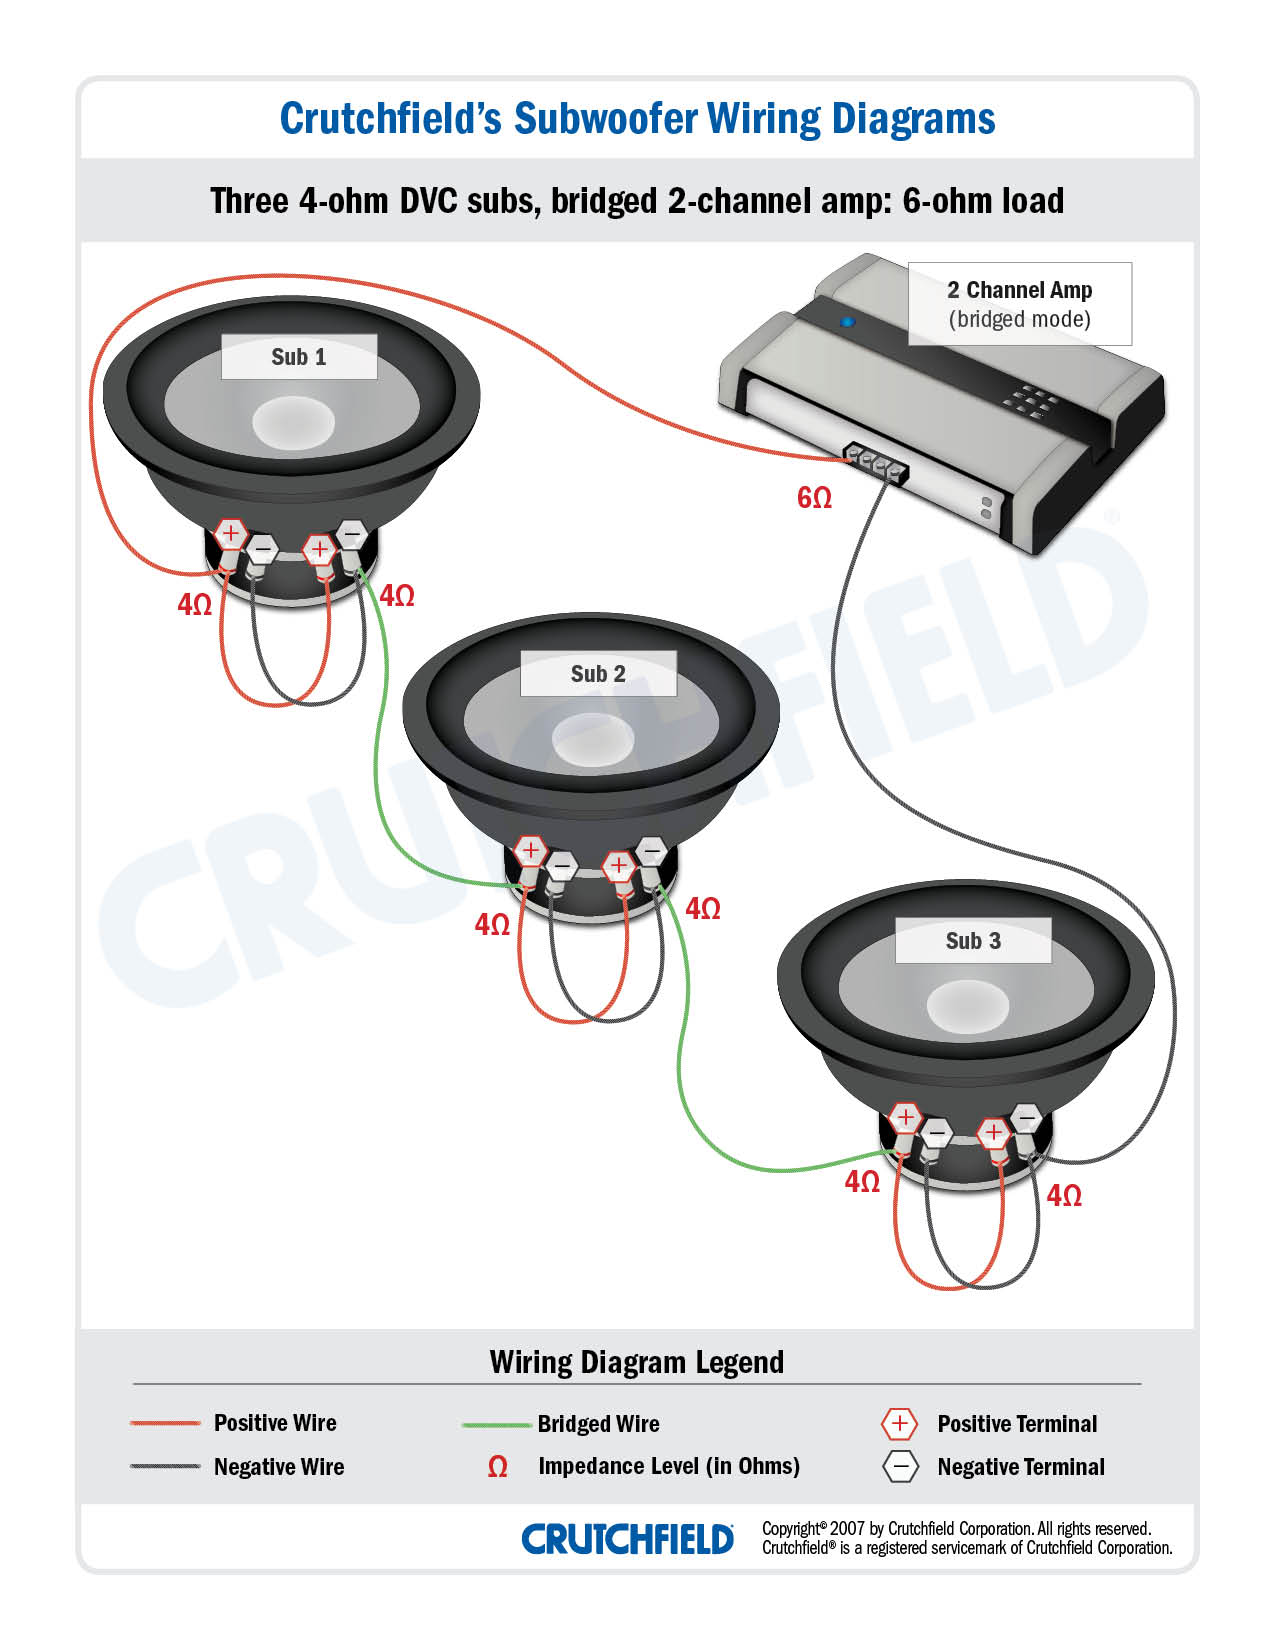 3 DVC 4 ohm 2 ch subwoofer wiring diagrams  at creativeand.co